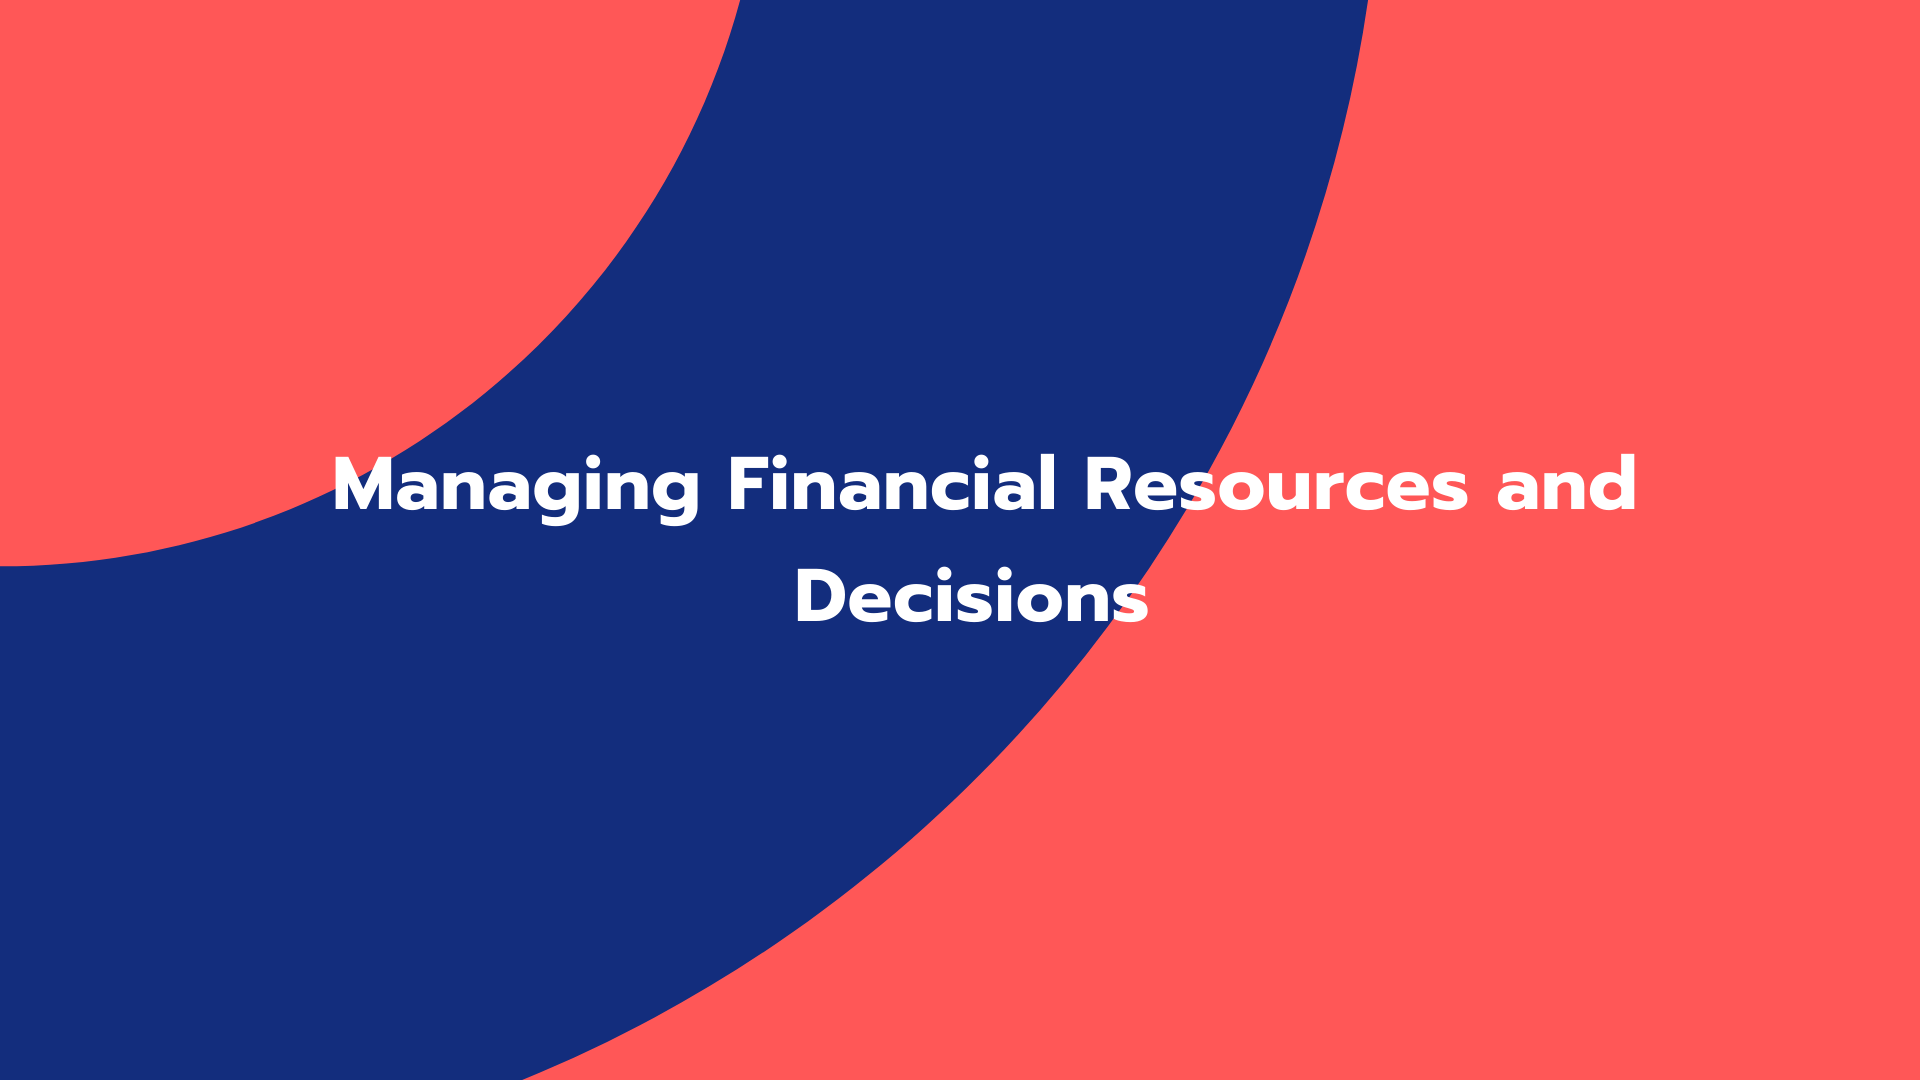 Managing Financial Resources and Decisions